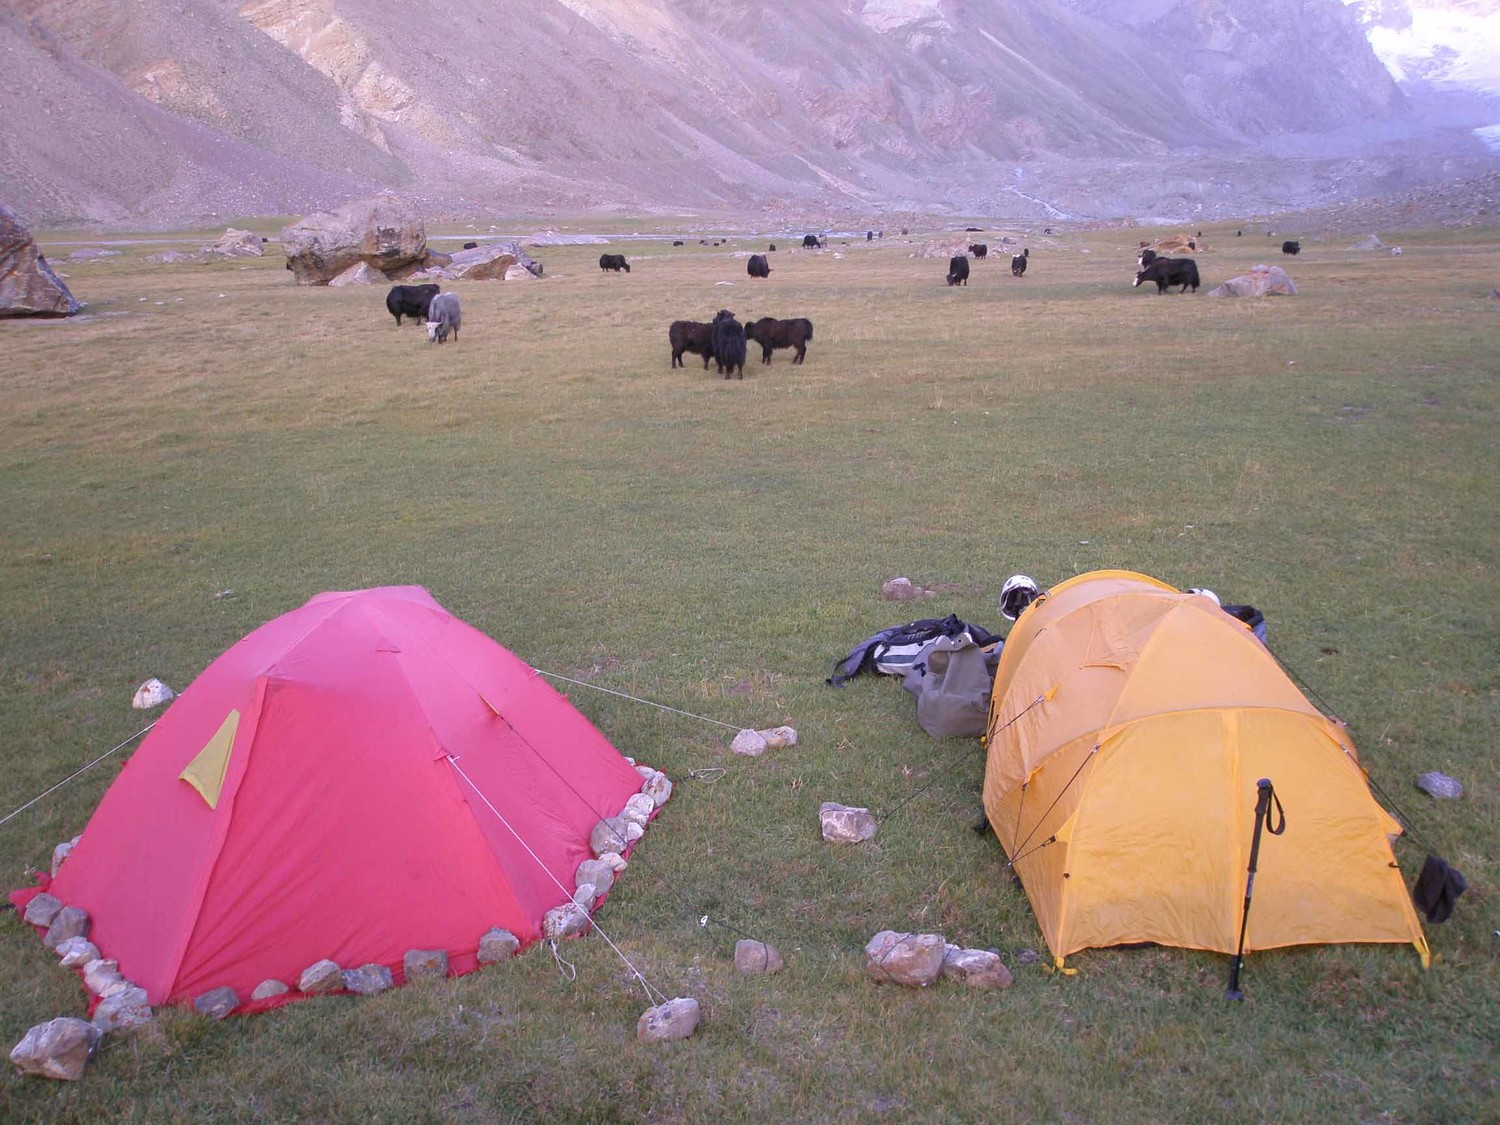 camp de base et yaks